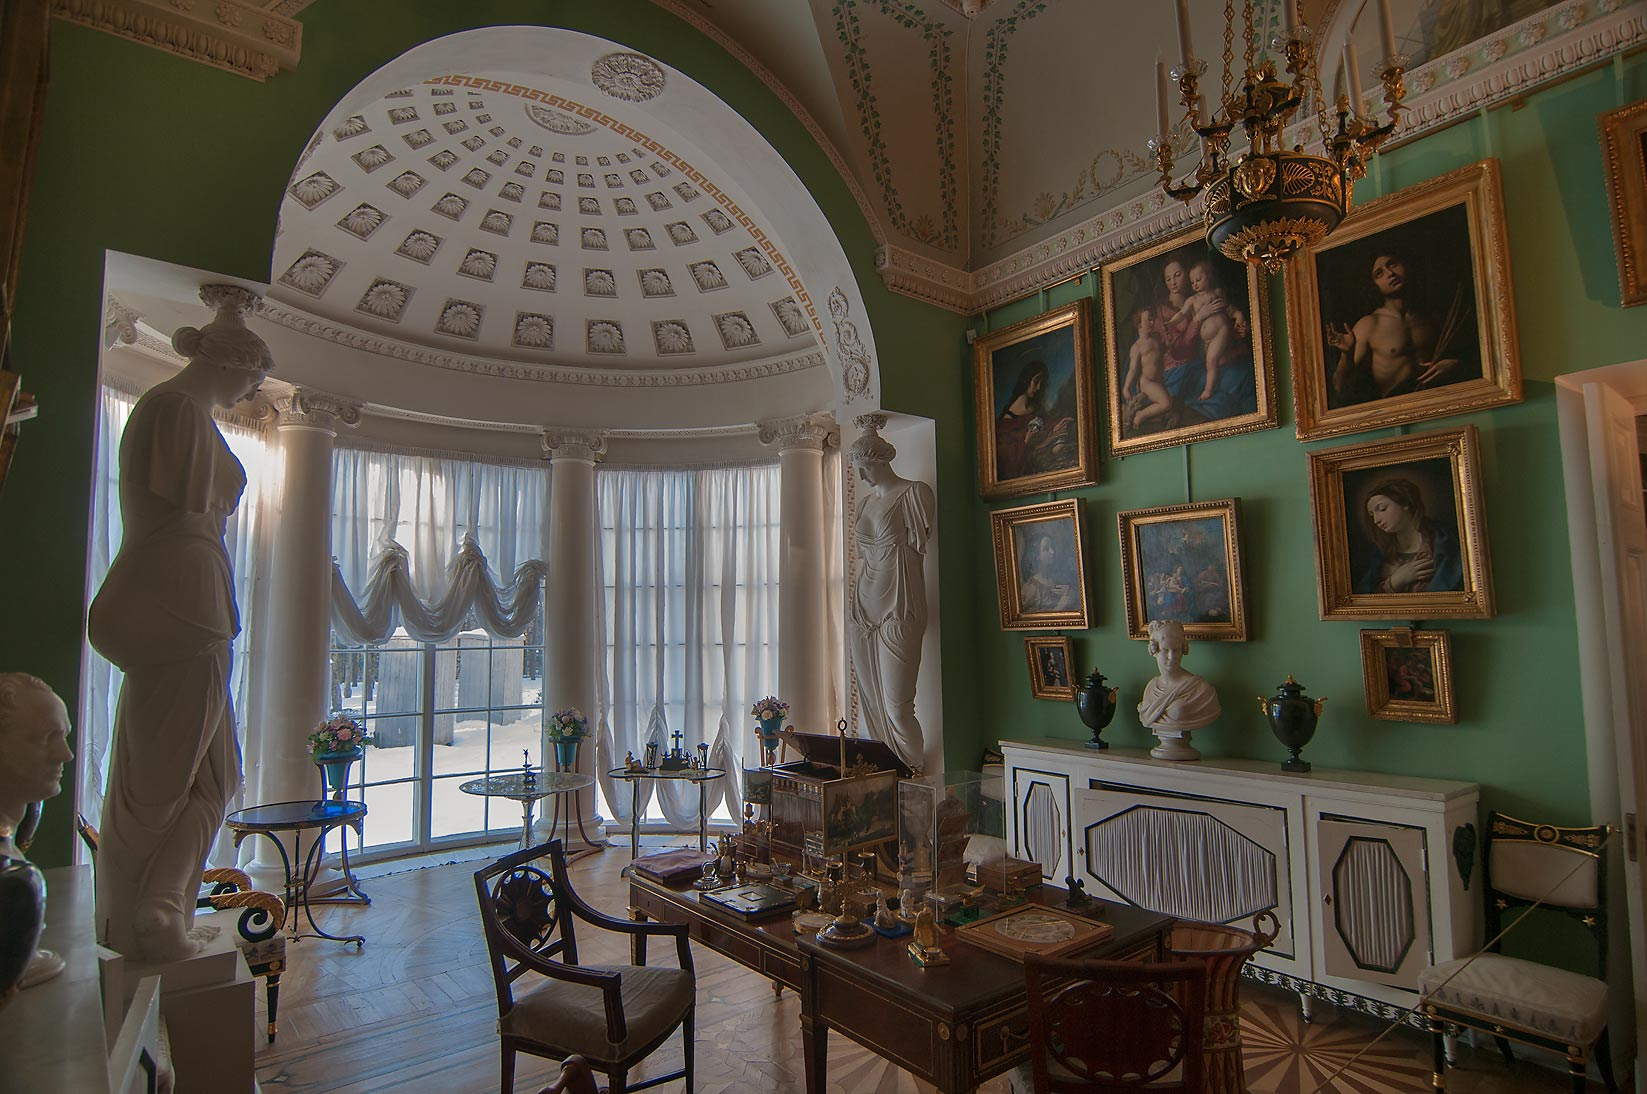 Half rotunda in Kabinet Fonarik (Light Room) in...a suburb of St.Petersburg, Russia